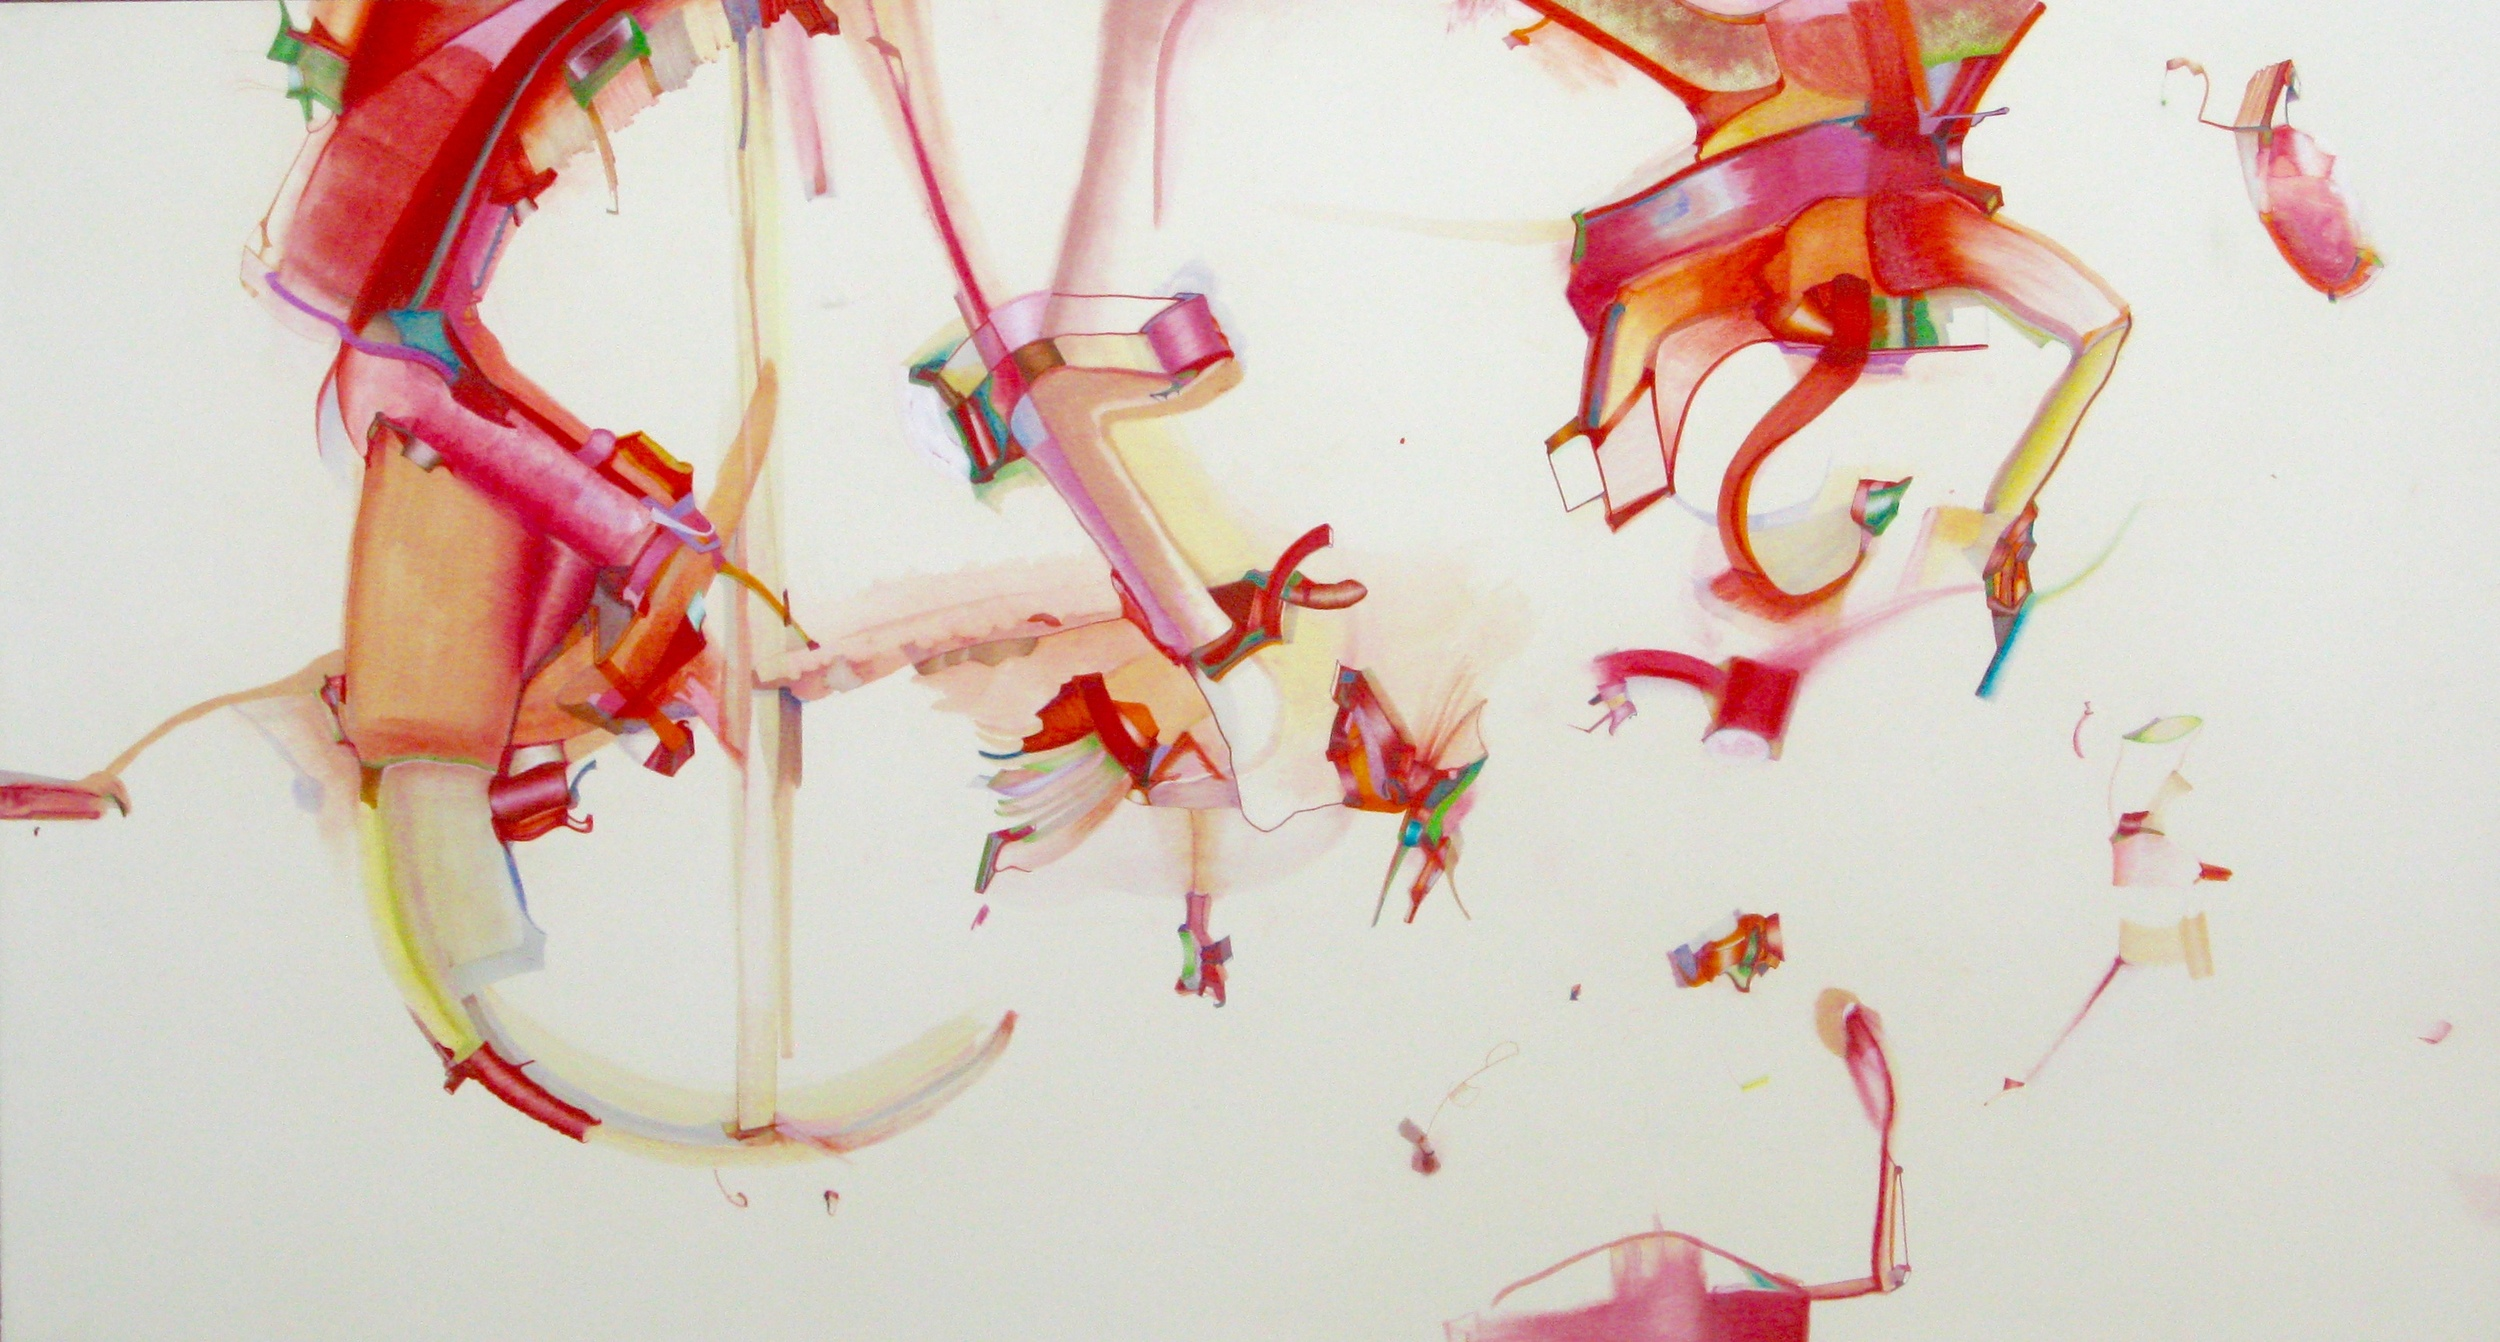 "Oil Stick, Chalk Stick, Watercolor, Ink, Colored Pencils on Paper on Linen on Canvas - 60"" x 33"" inches"